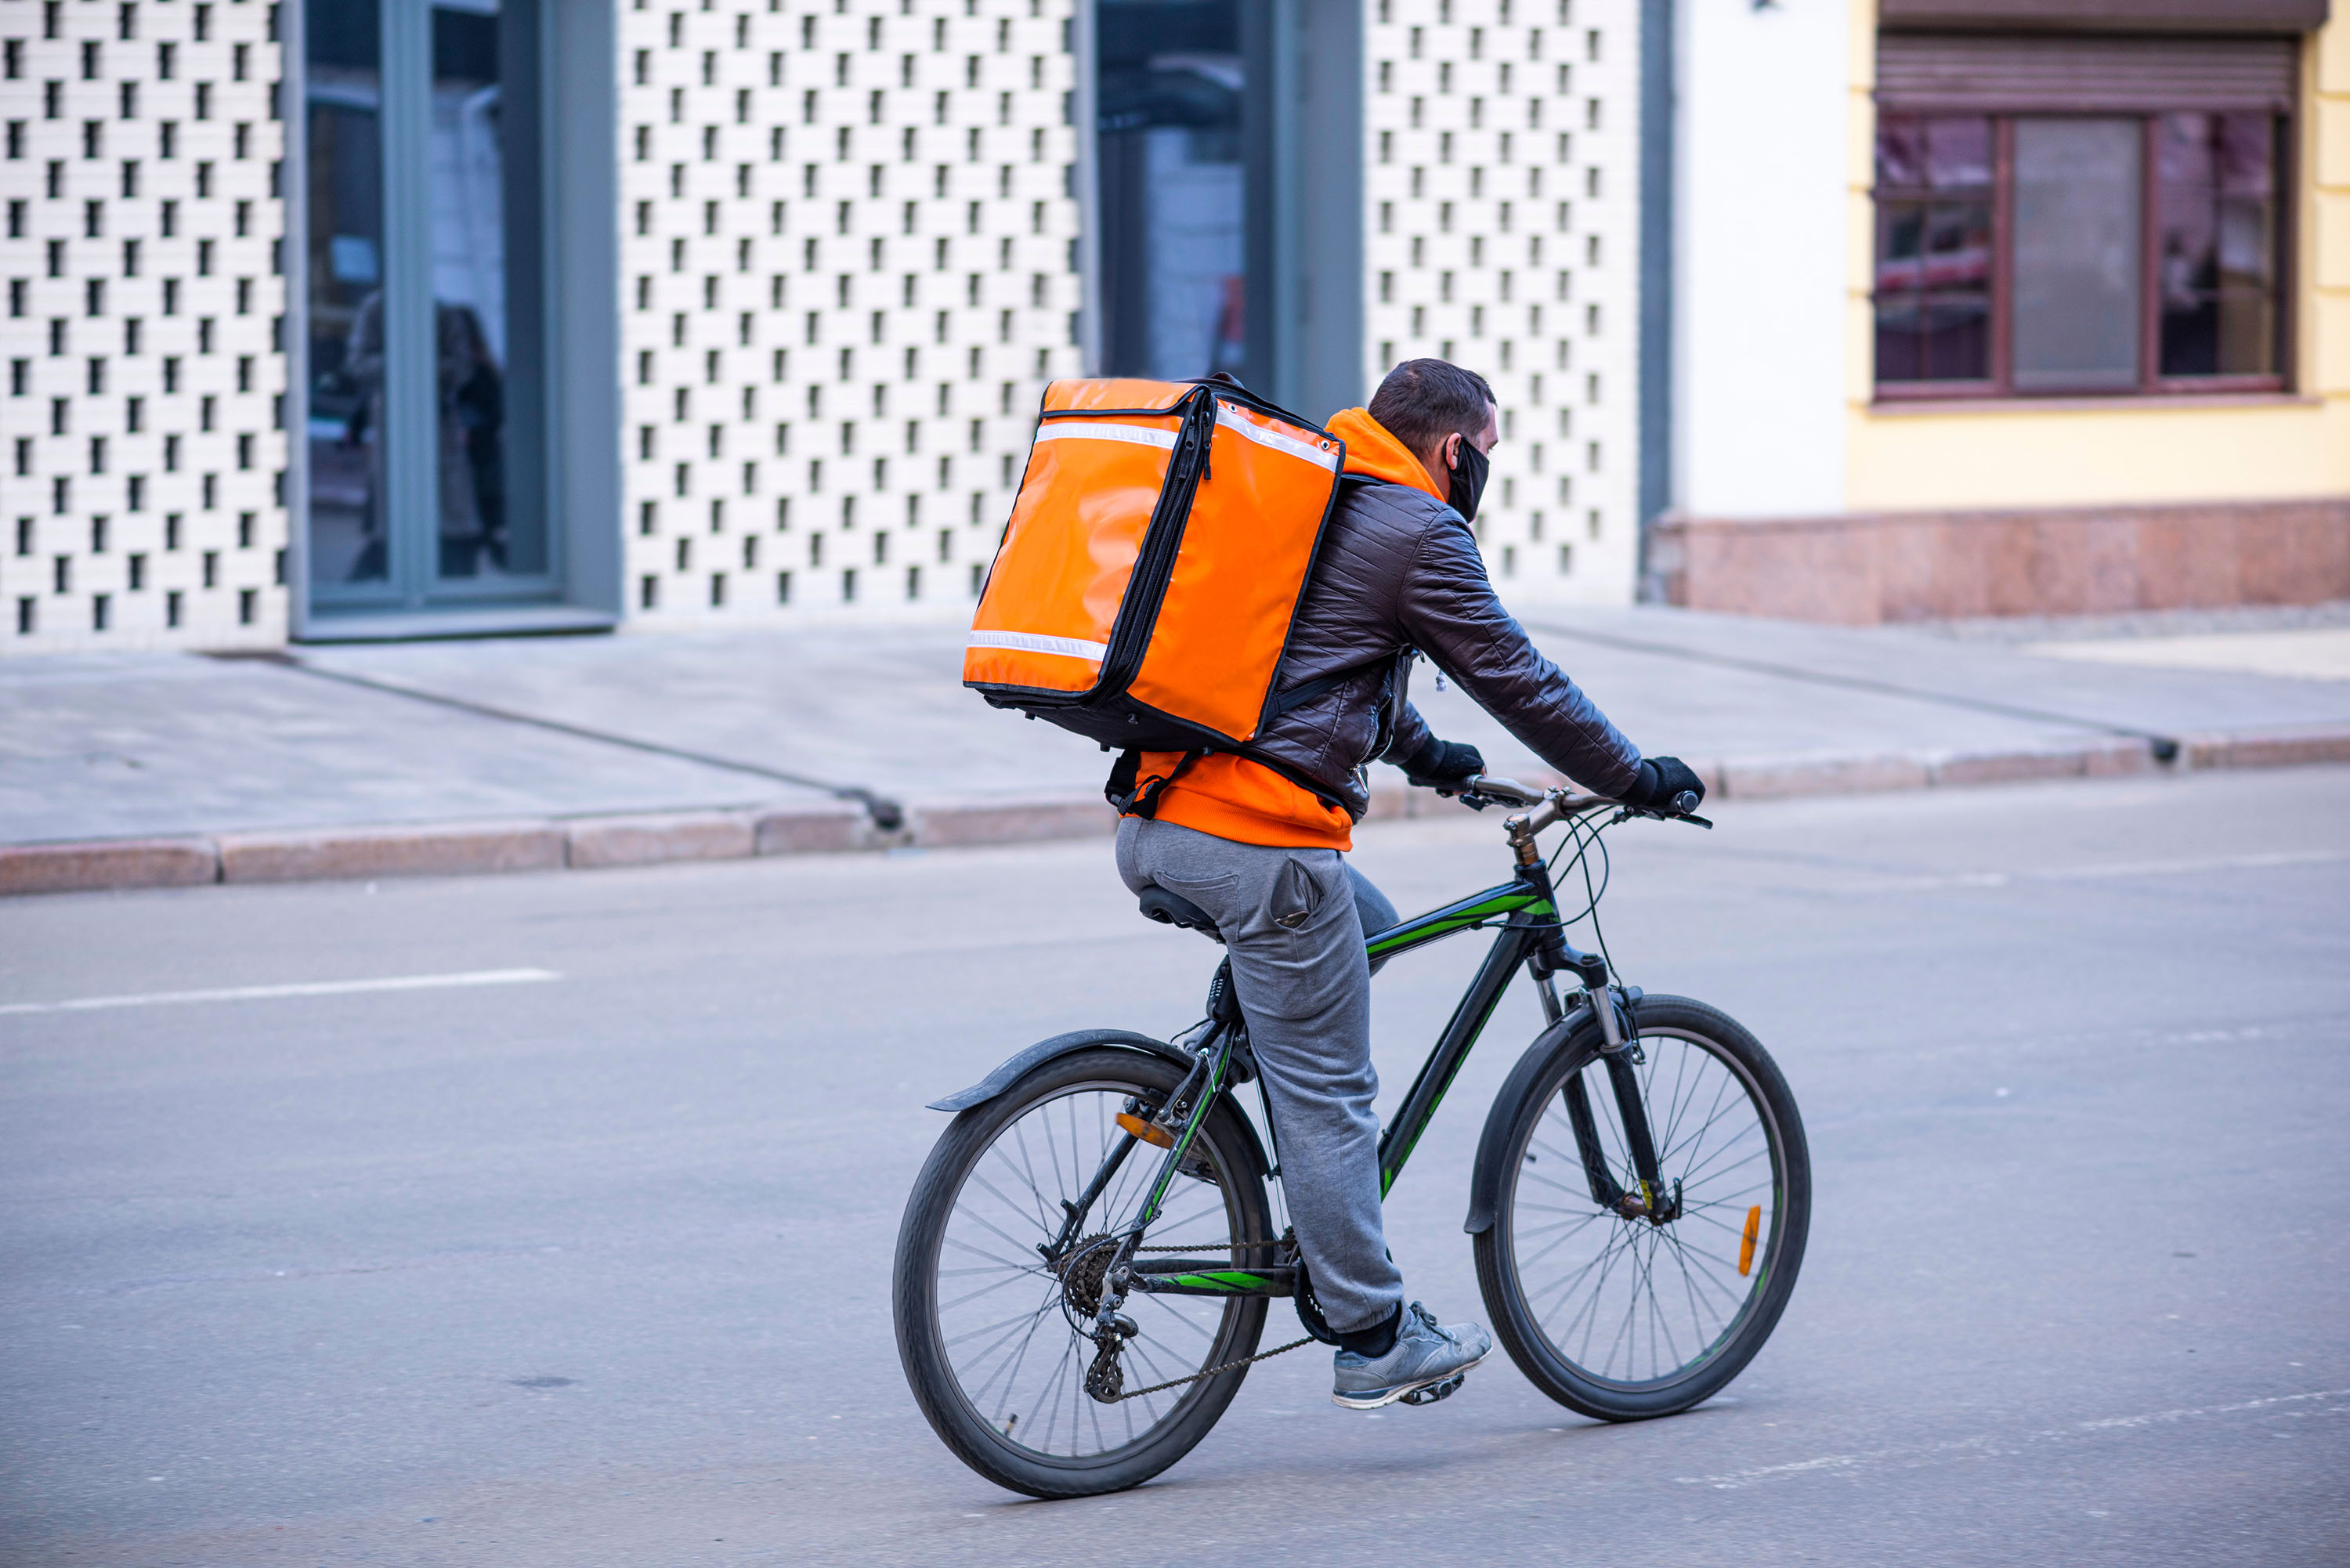 Working in the gig economy results in tax obligations